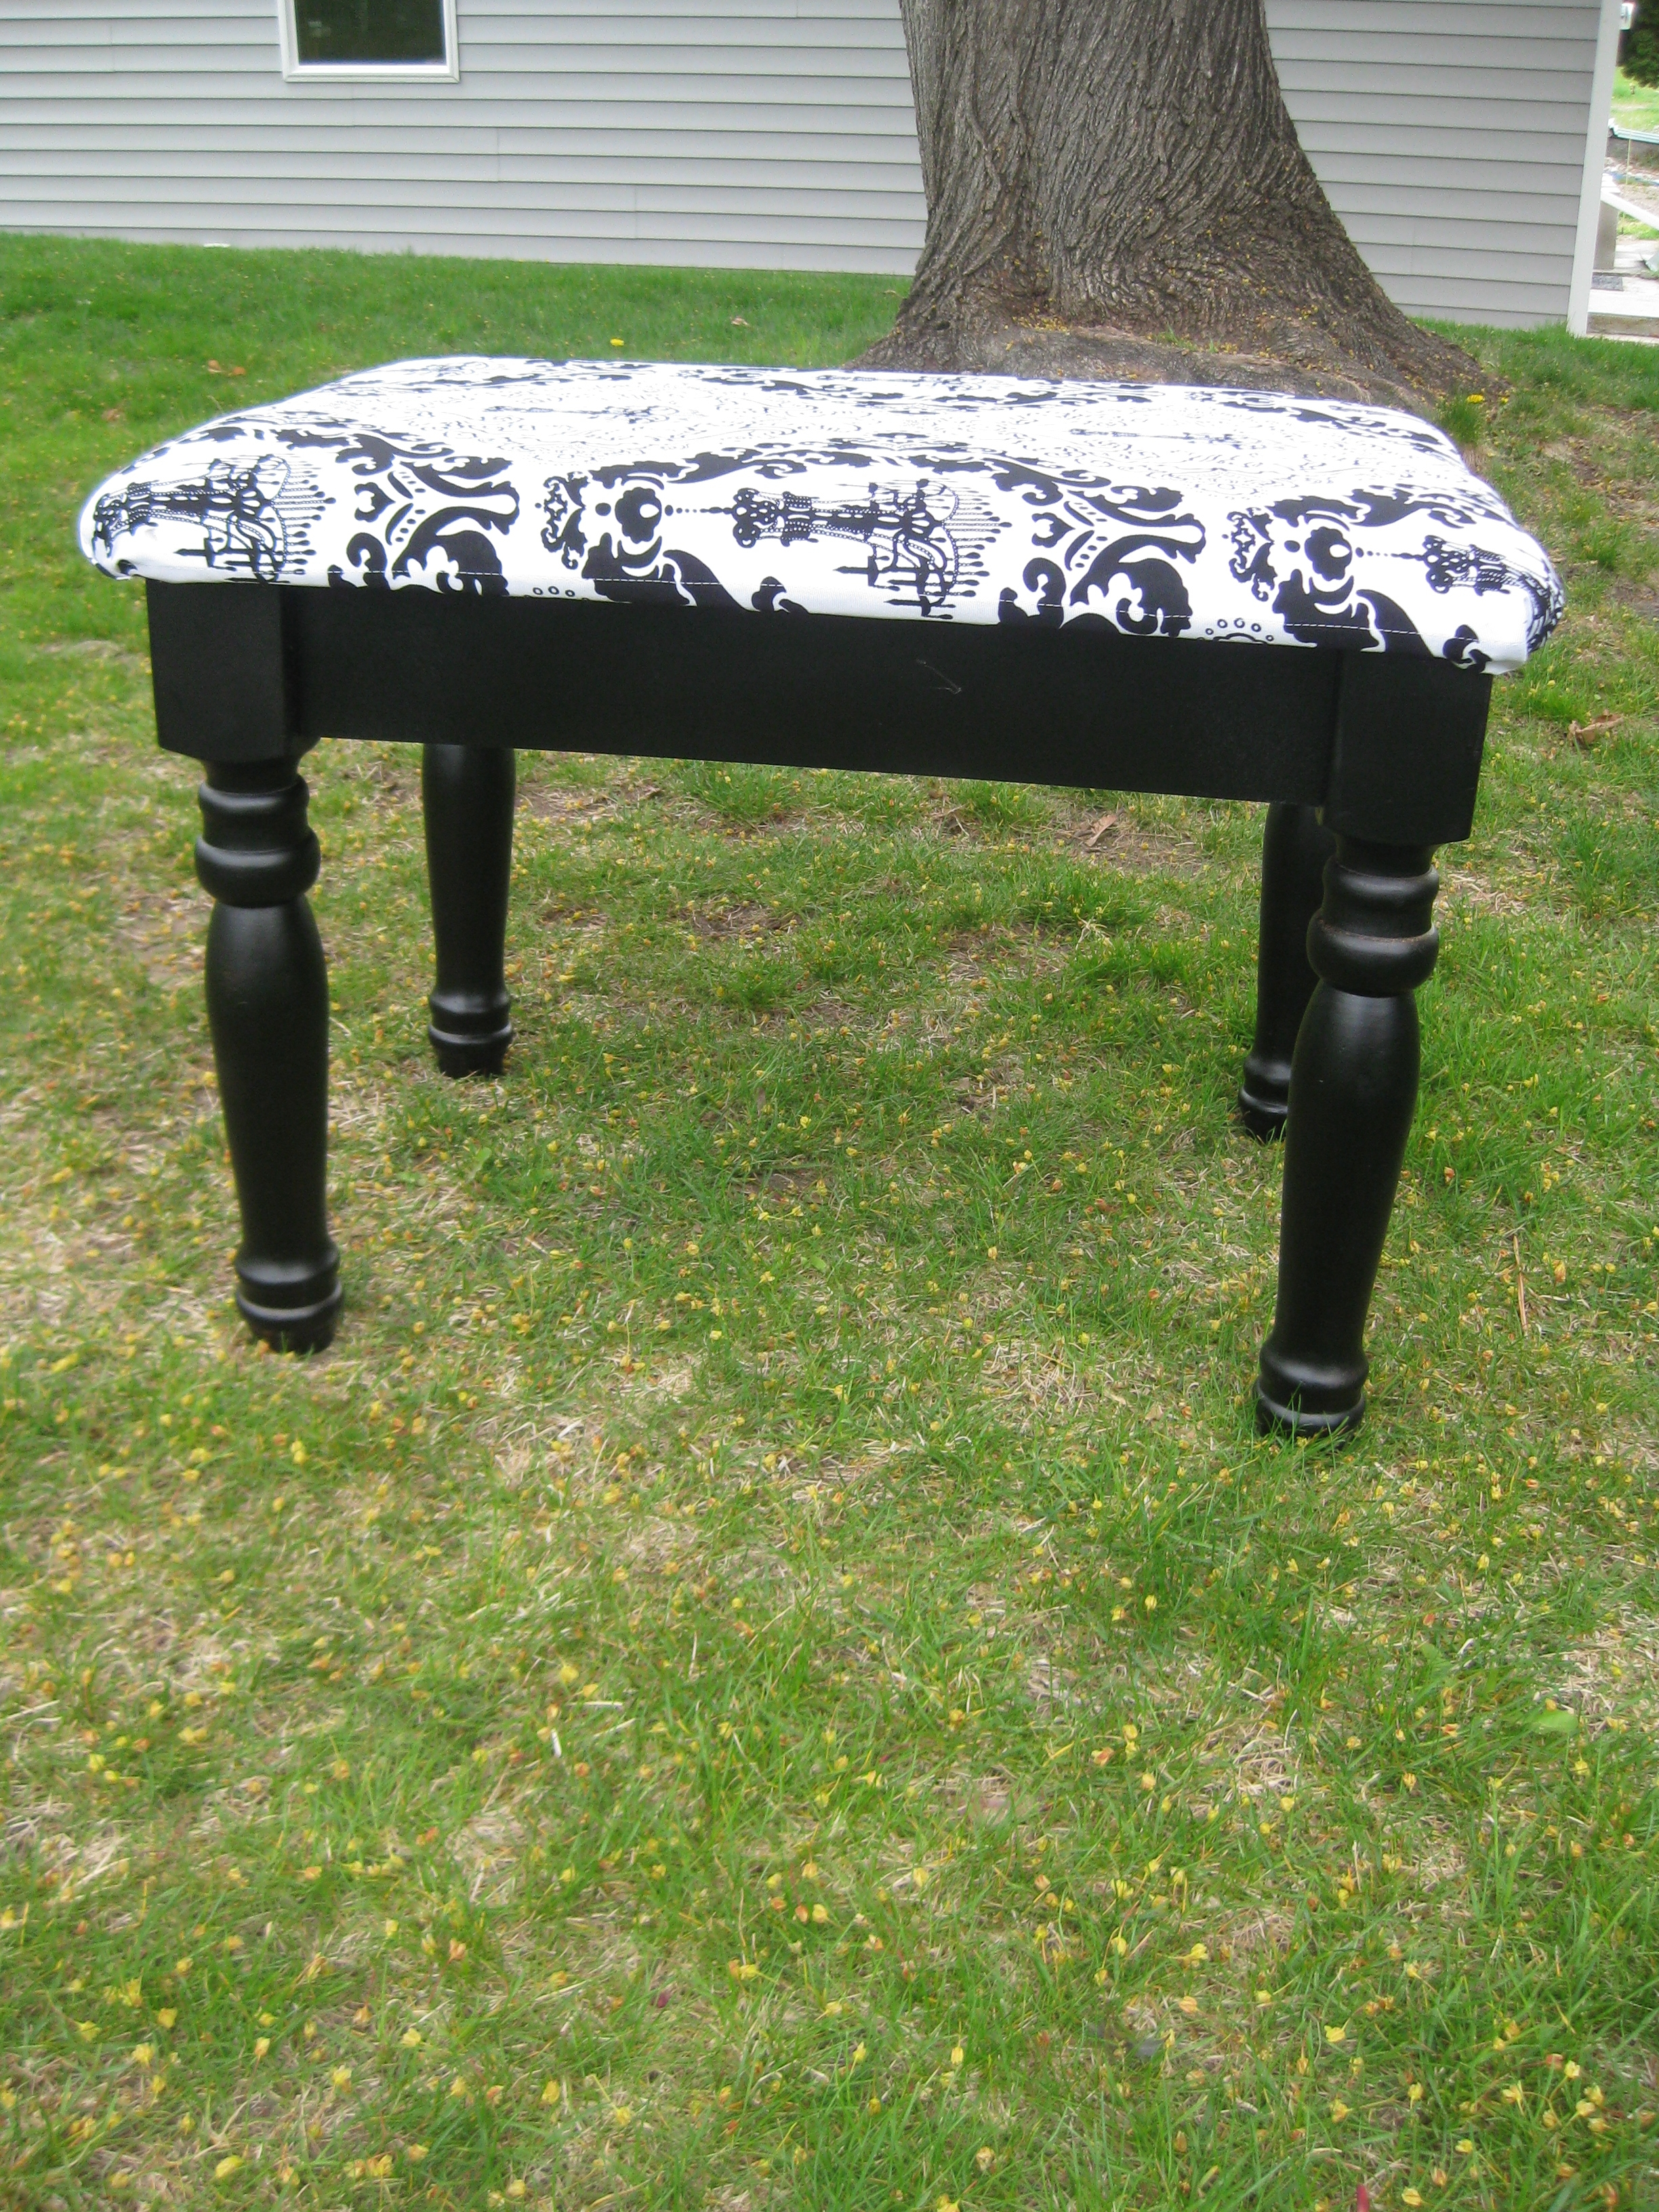 End table turned into Stool